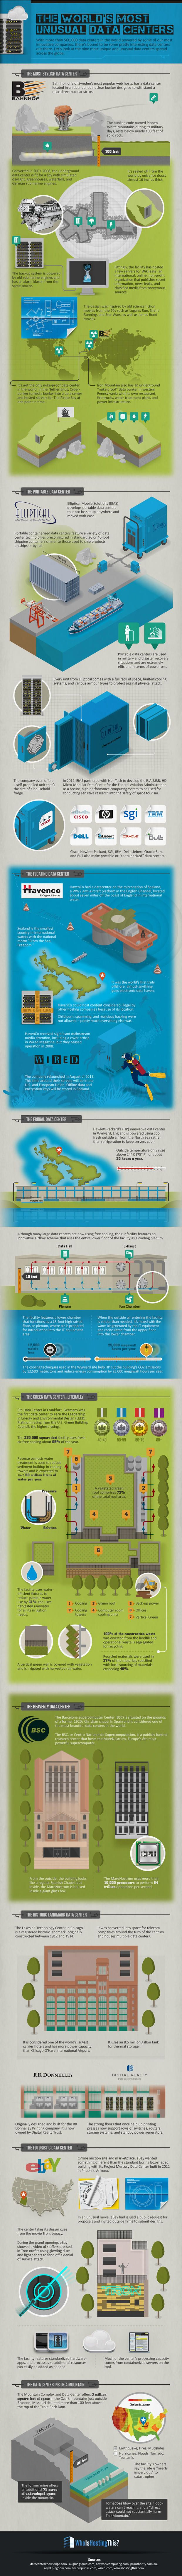 Coolio! Infographic: Nine most unusual data centers in the world - TechRepublic